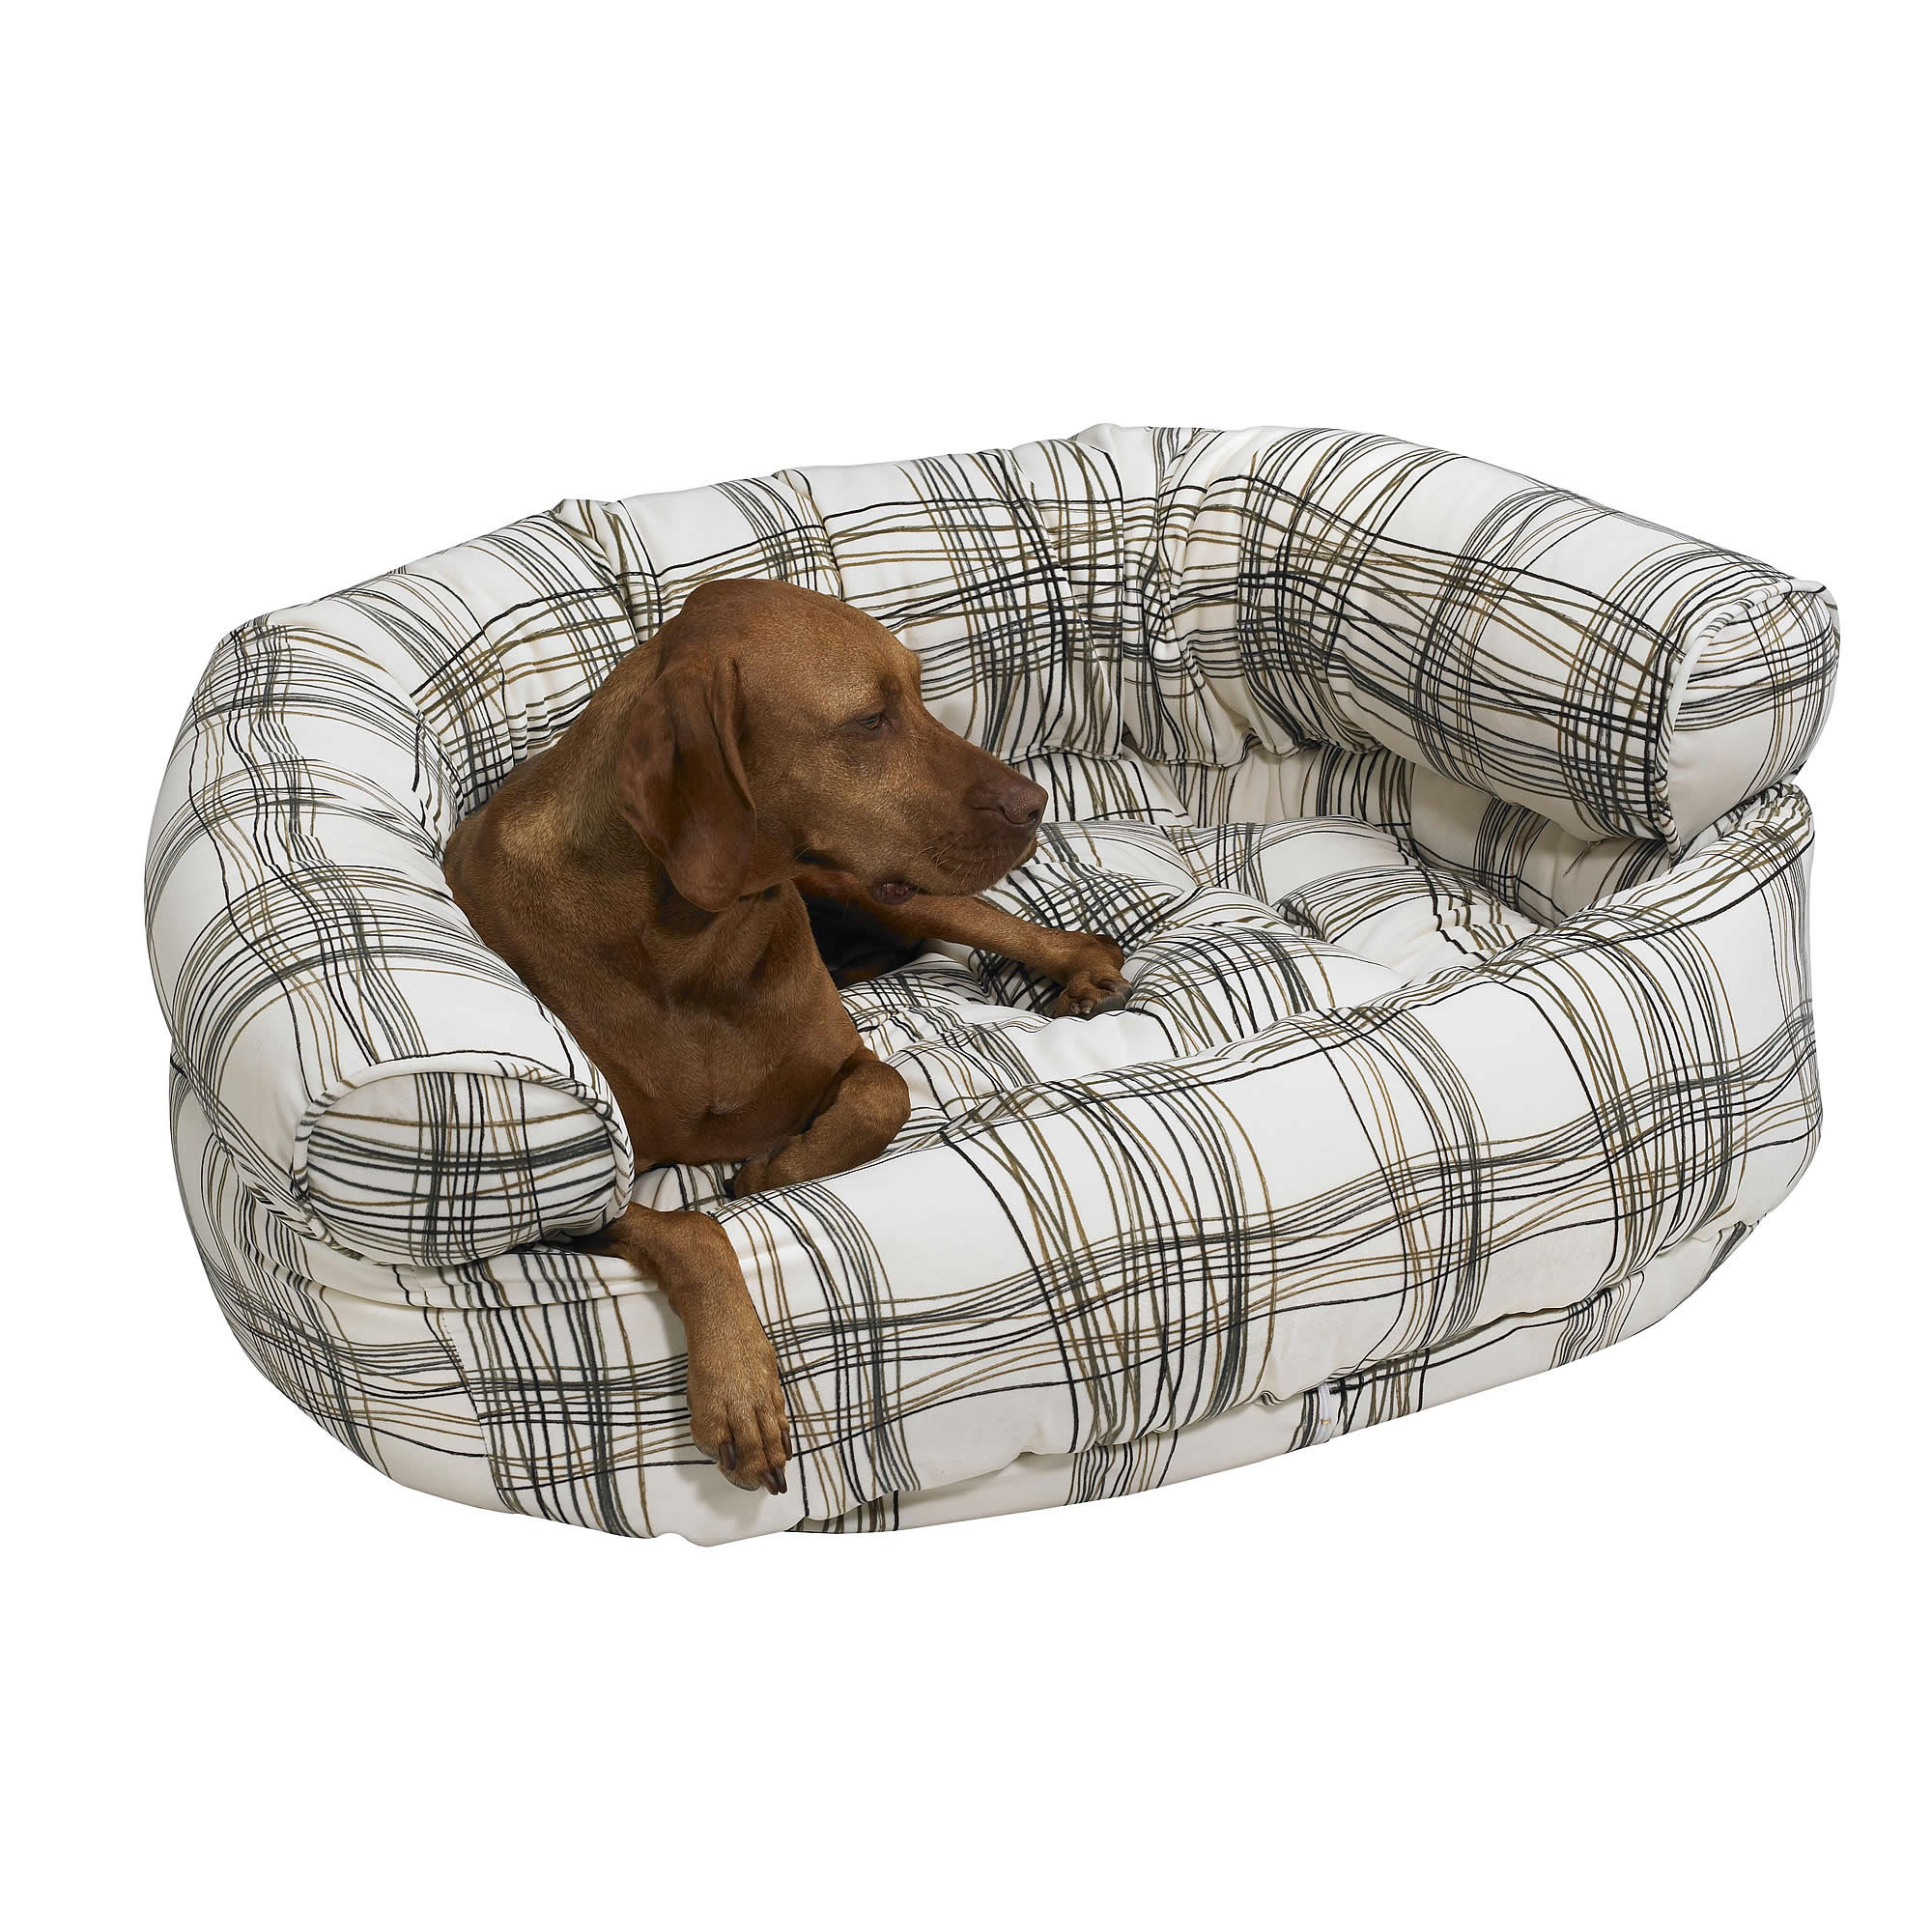 bowser pet beds for sale  bowsers dog beds  precious pets paradise - bowsers diamond collection double donut dog bed